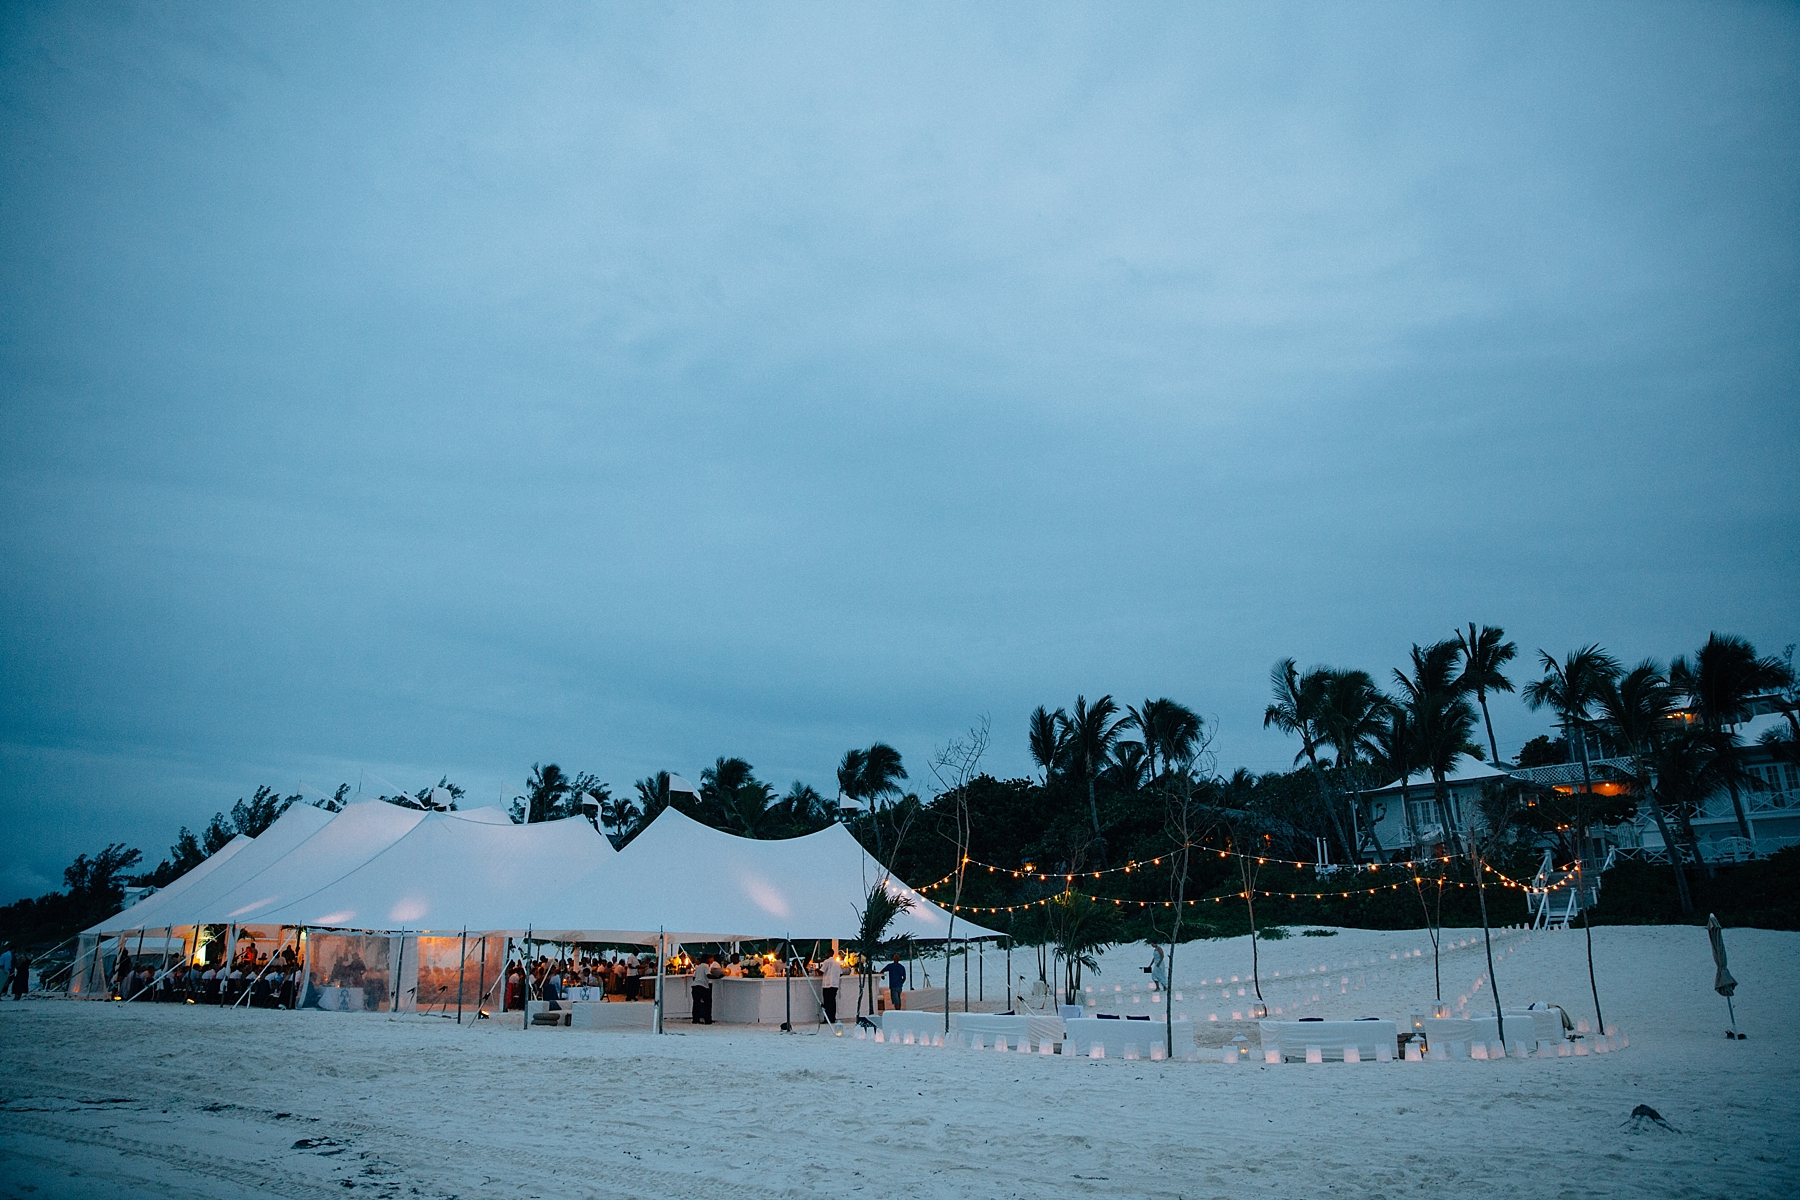 briland-wedding-photographer-harbour-island-bahamas_0043.jpg